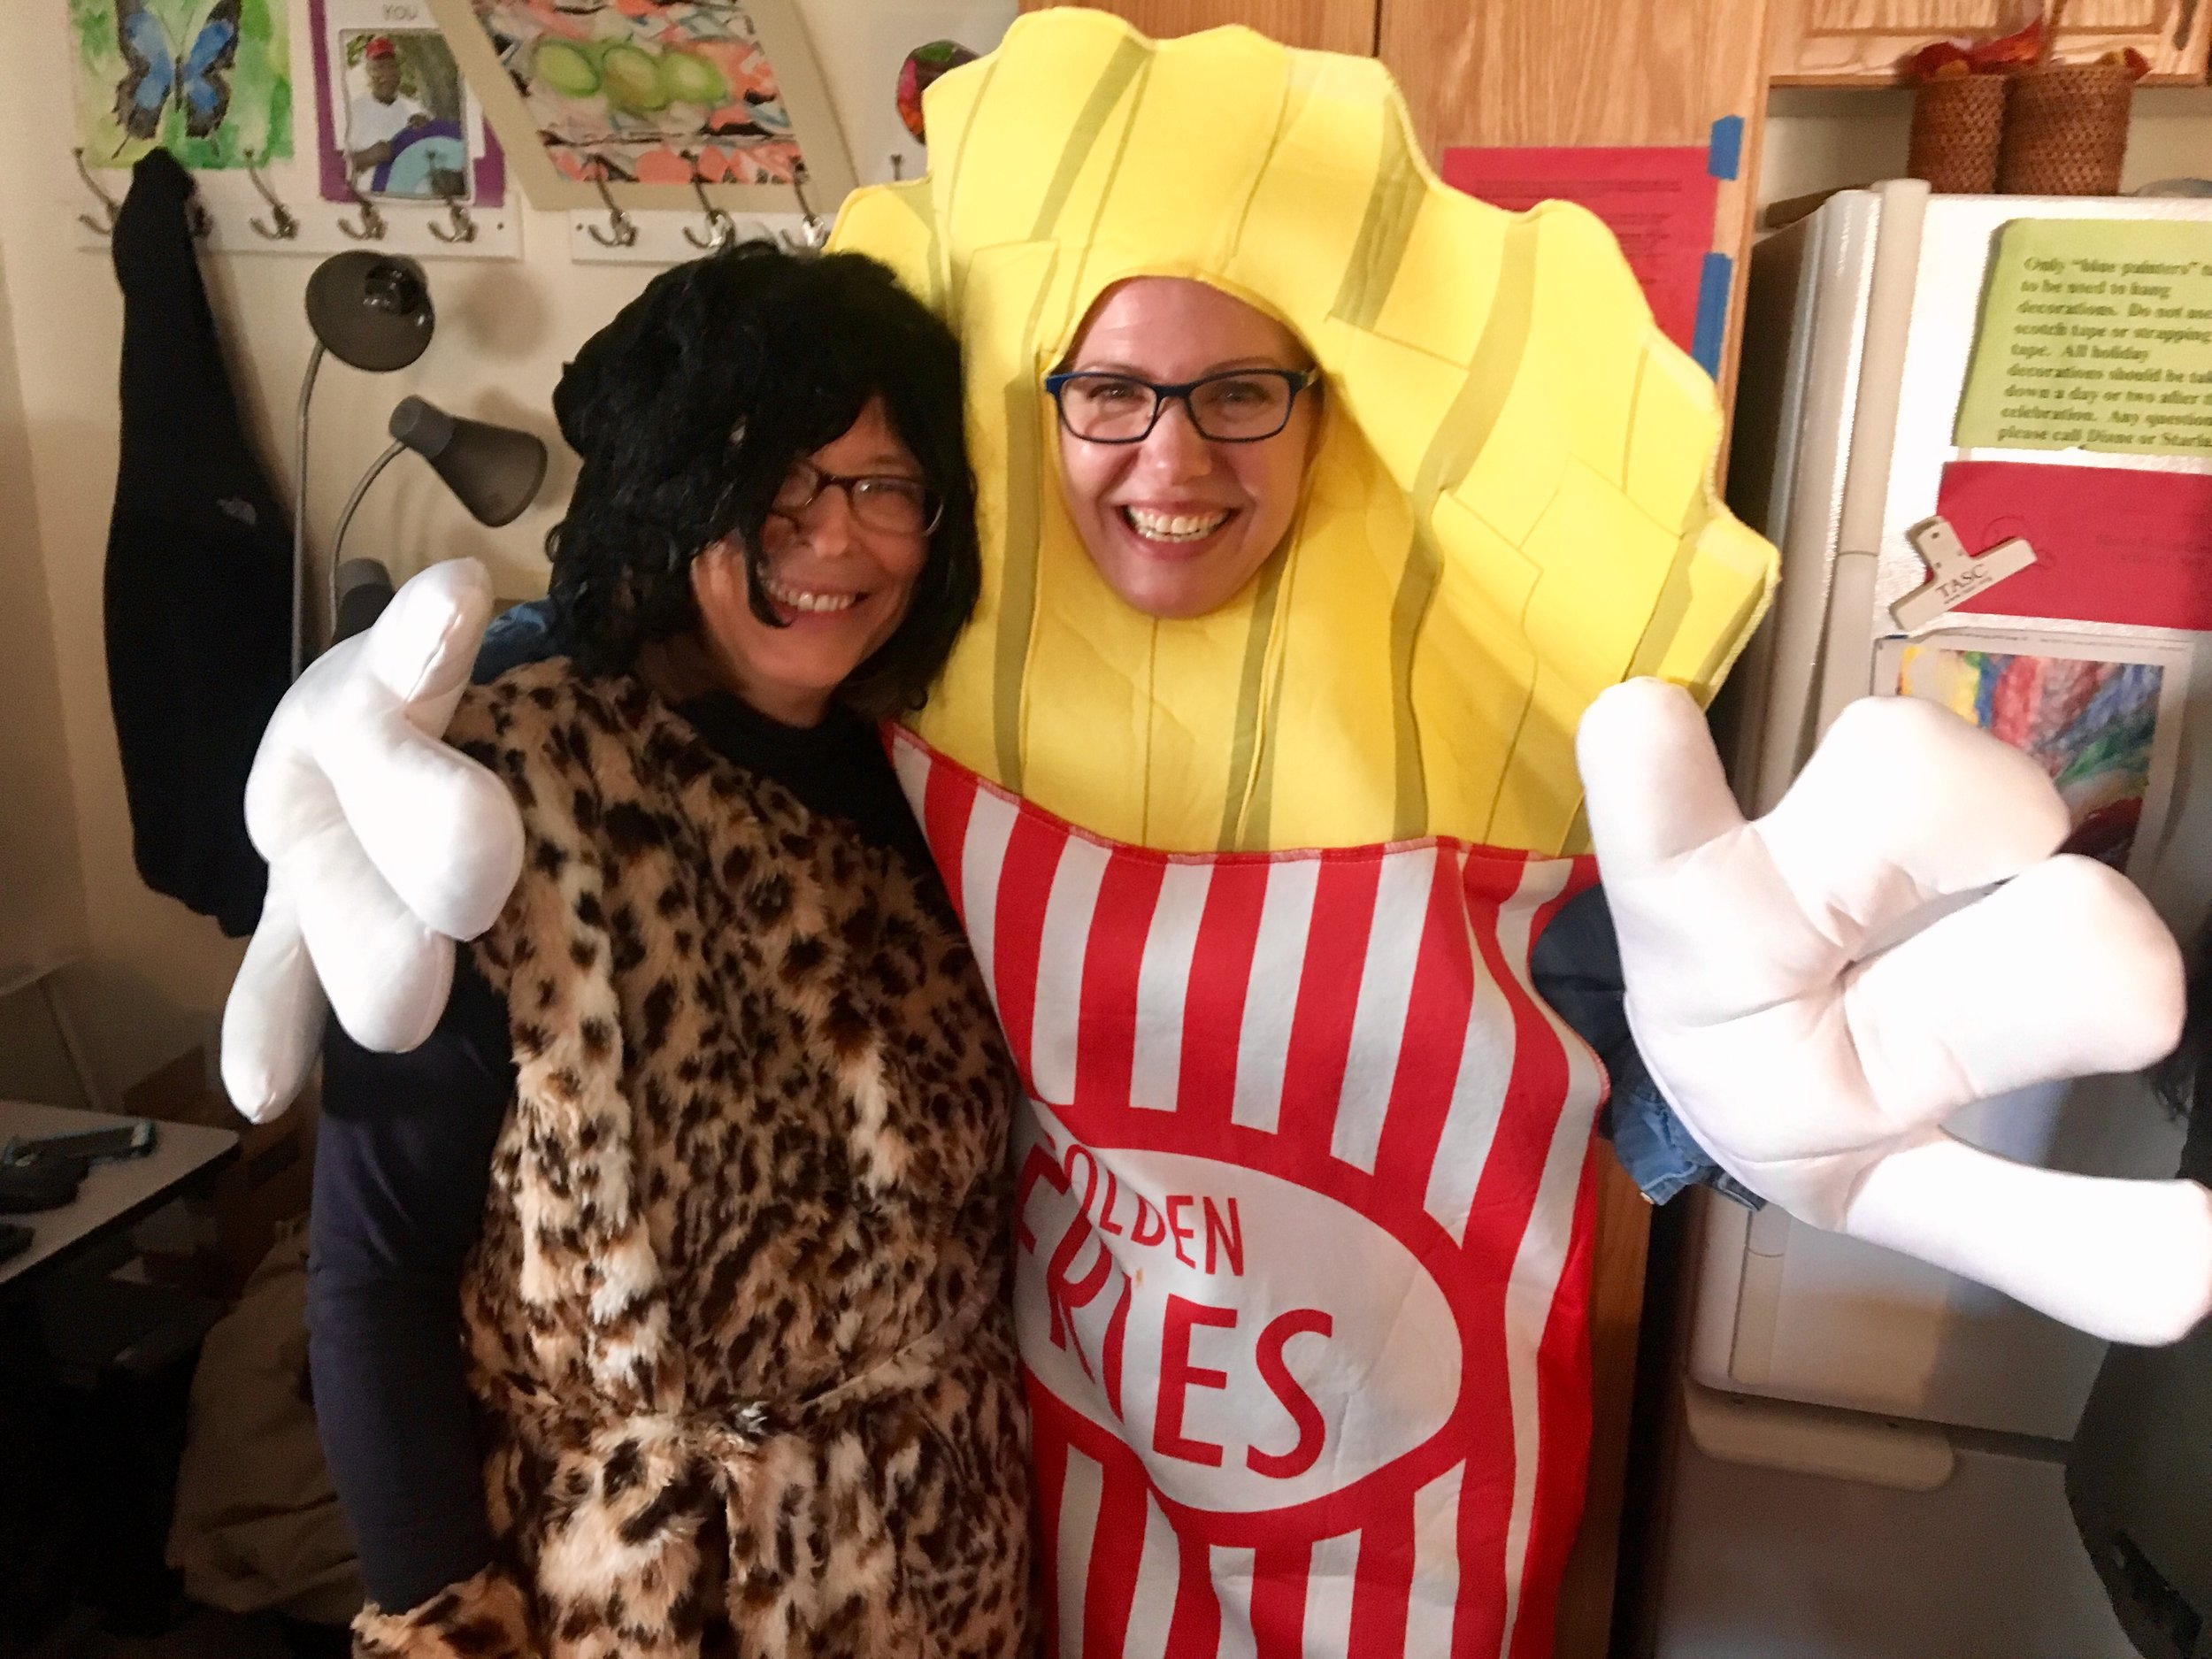 (Left) Impact's Accounting Manager Mary Ann Kearns and (Right) Chief Development Officer, Dena Malikowski pose in their Halloween costumes